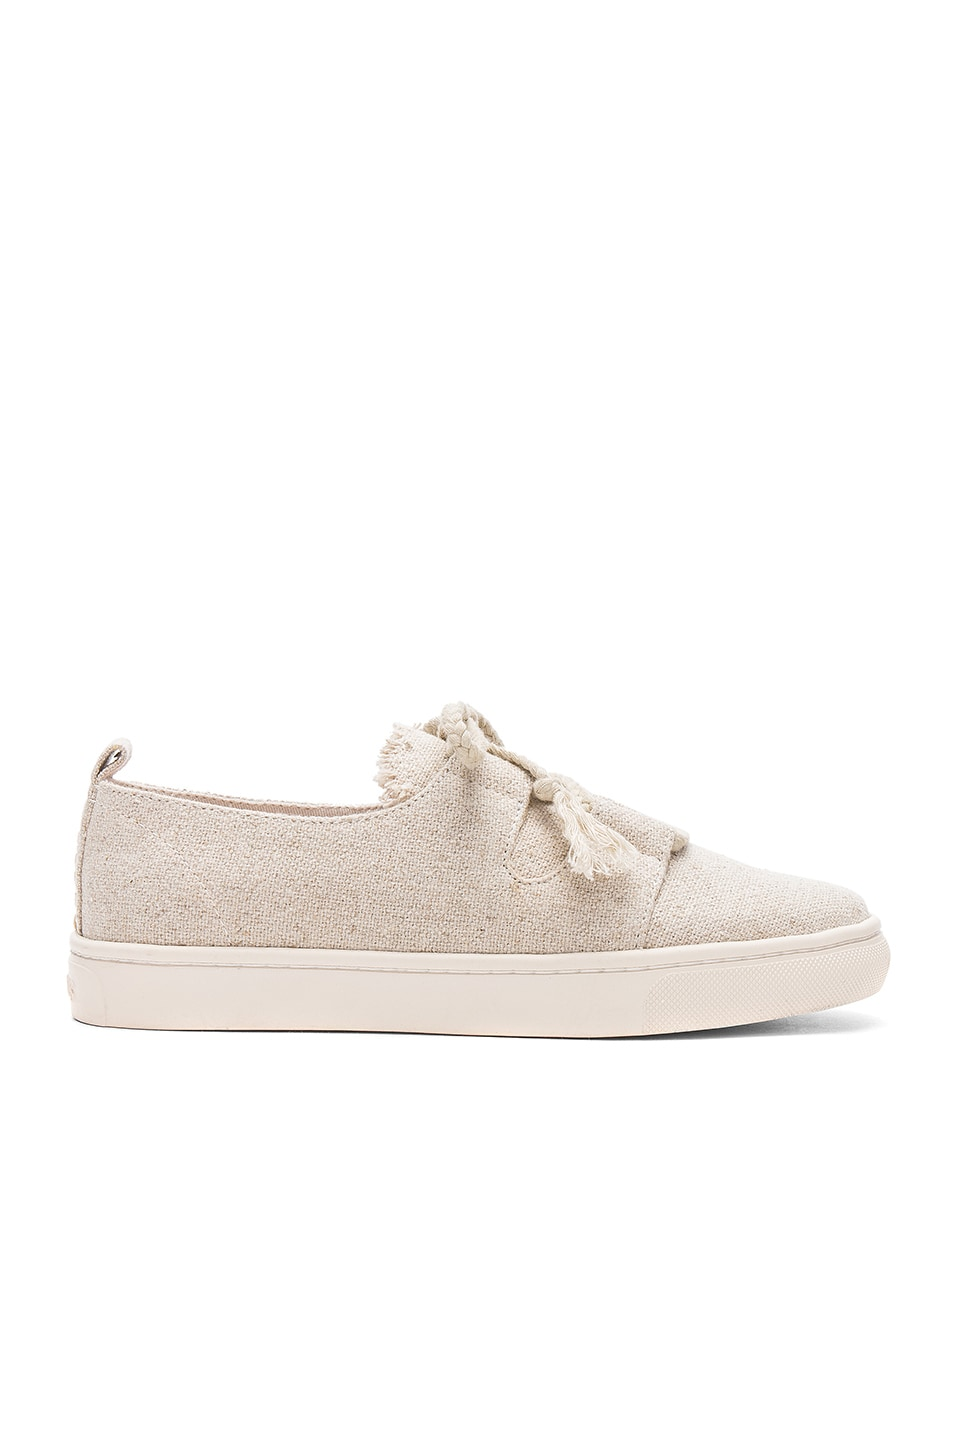 Biarritz Sneaker by Soludos